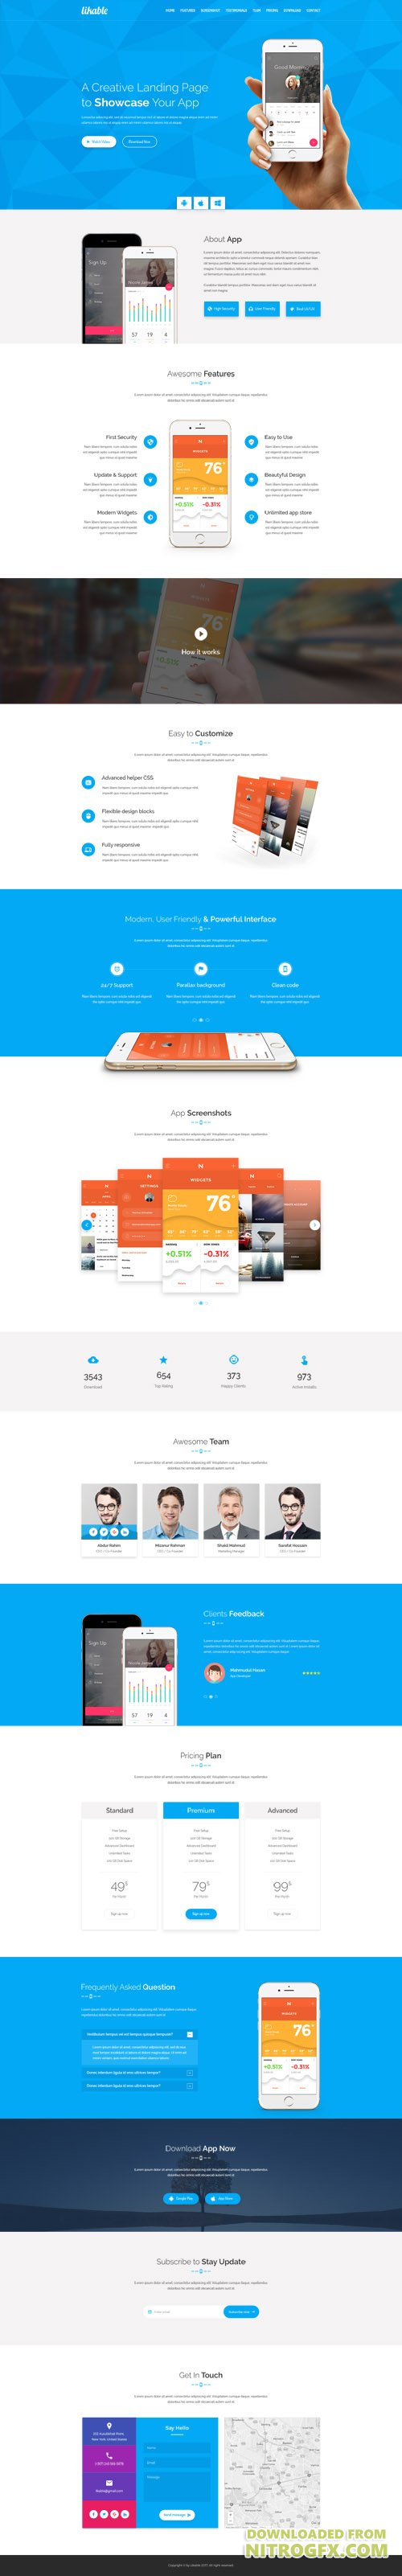 PSD Web Template - AppsPress - Landing Page Theme